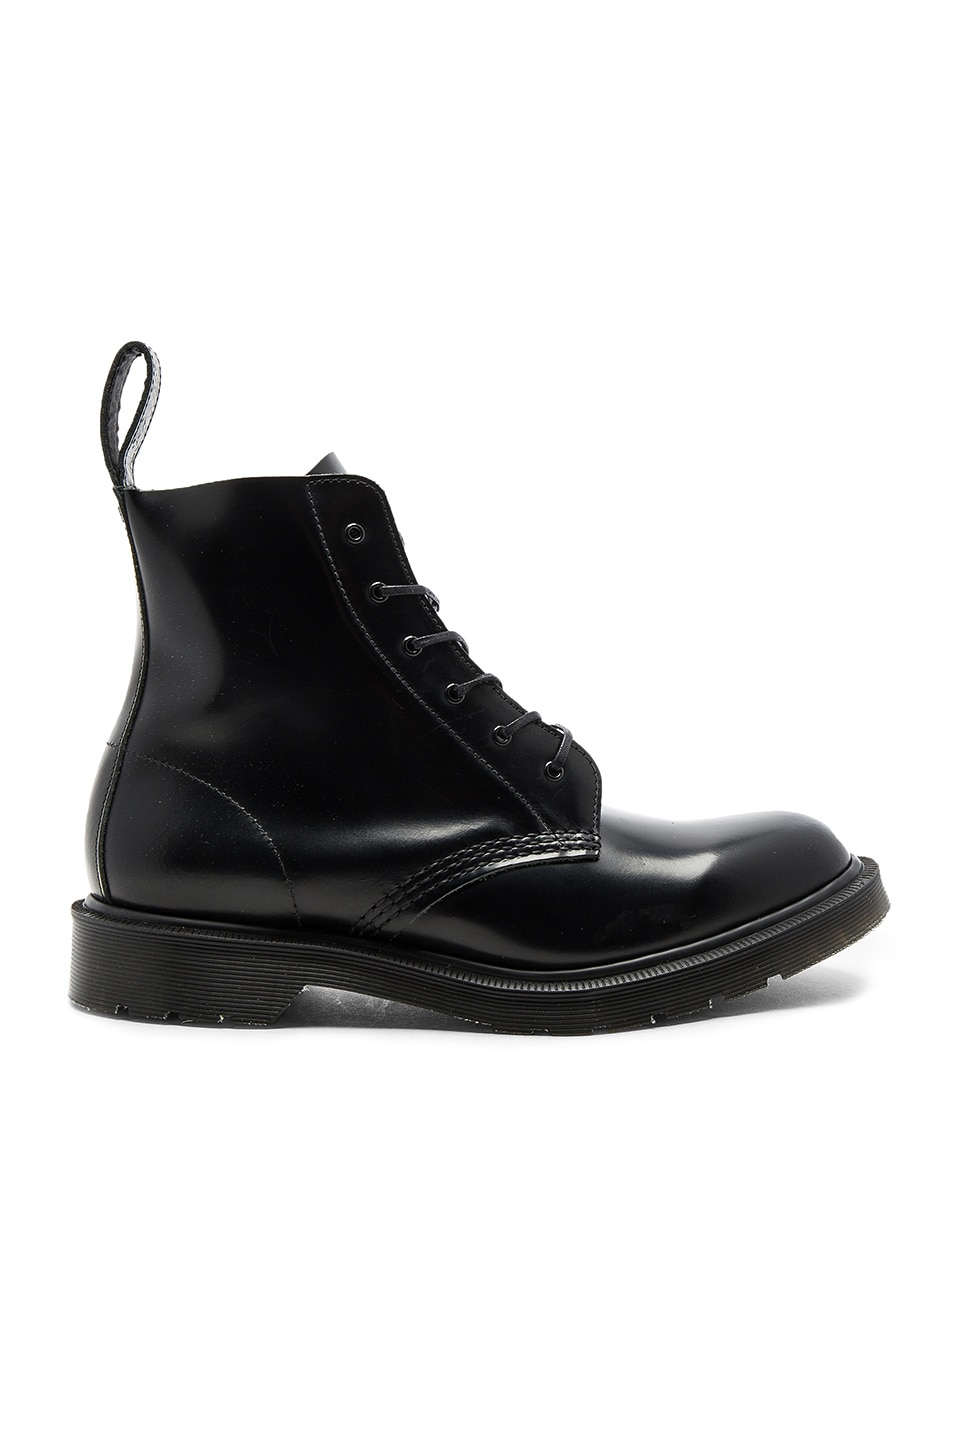 Photo of Made in England Arthur 6 Eye Boot by Dr. Martens men clothes